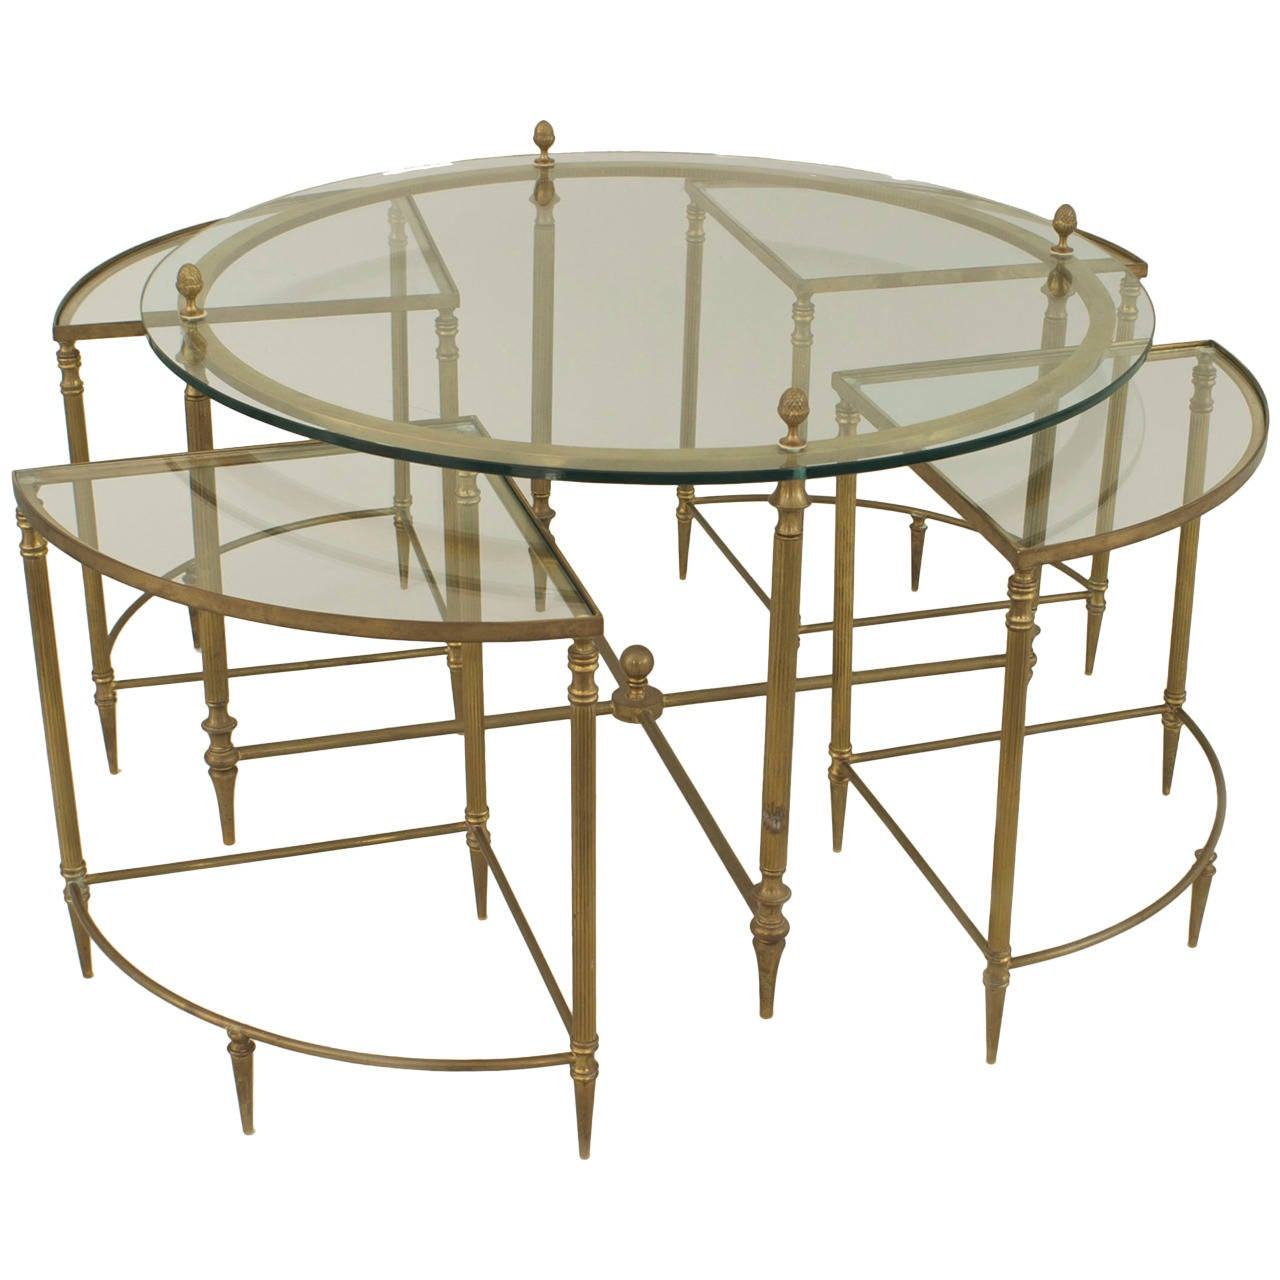 Mid Century American Brass Coffee Table With Four Nested Wedge Tables For Sale At 1stdibs